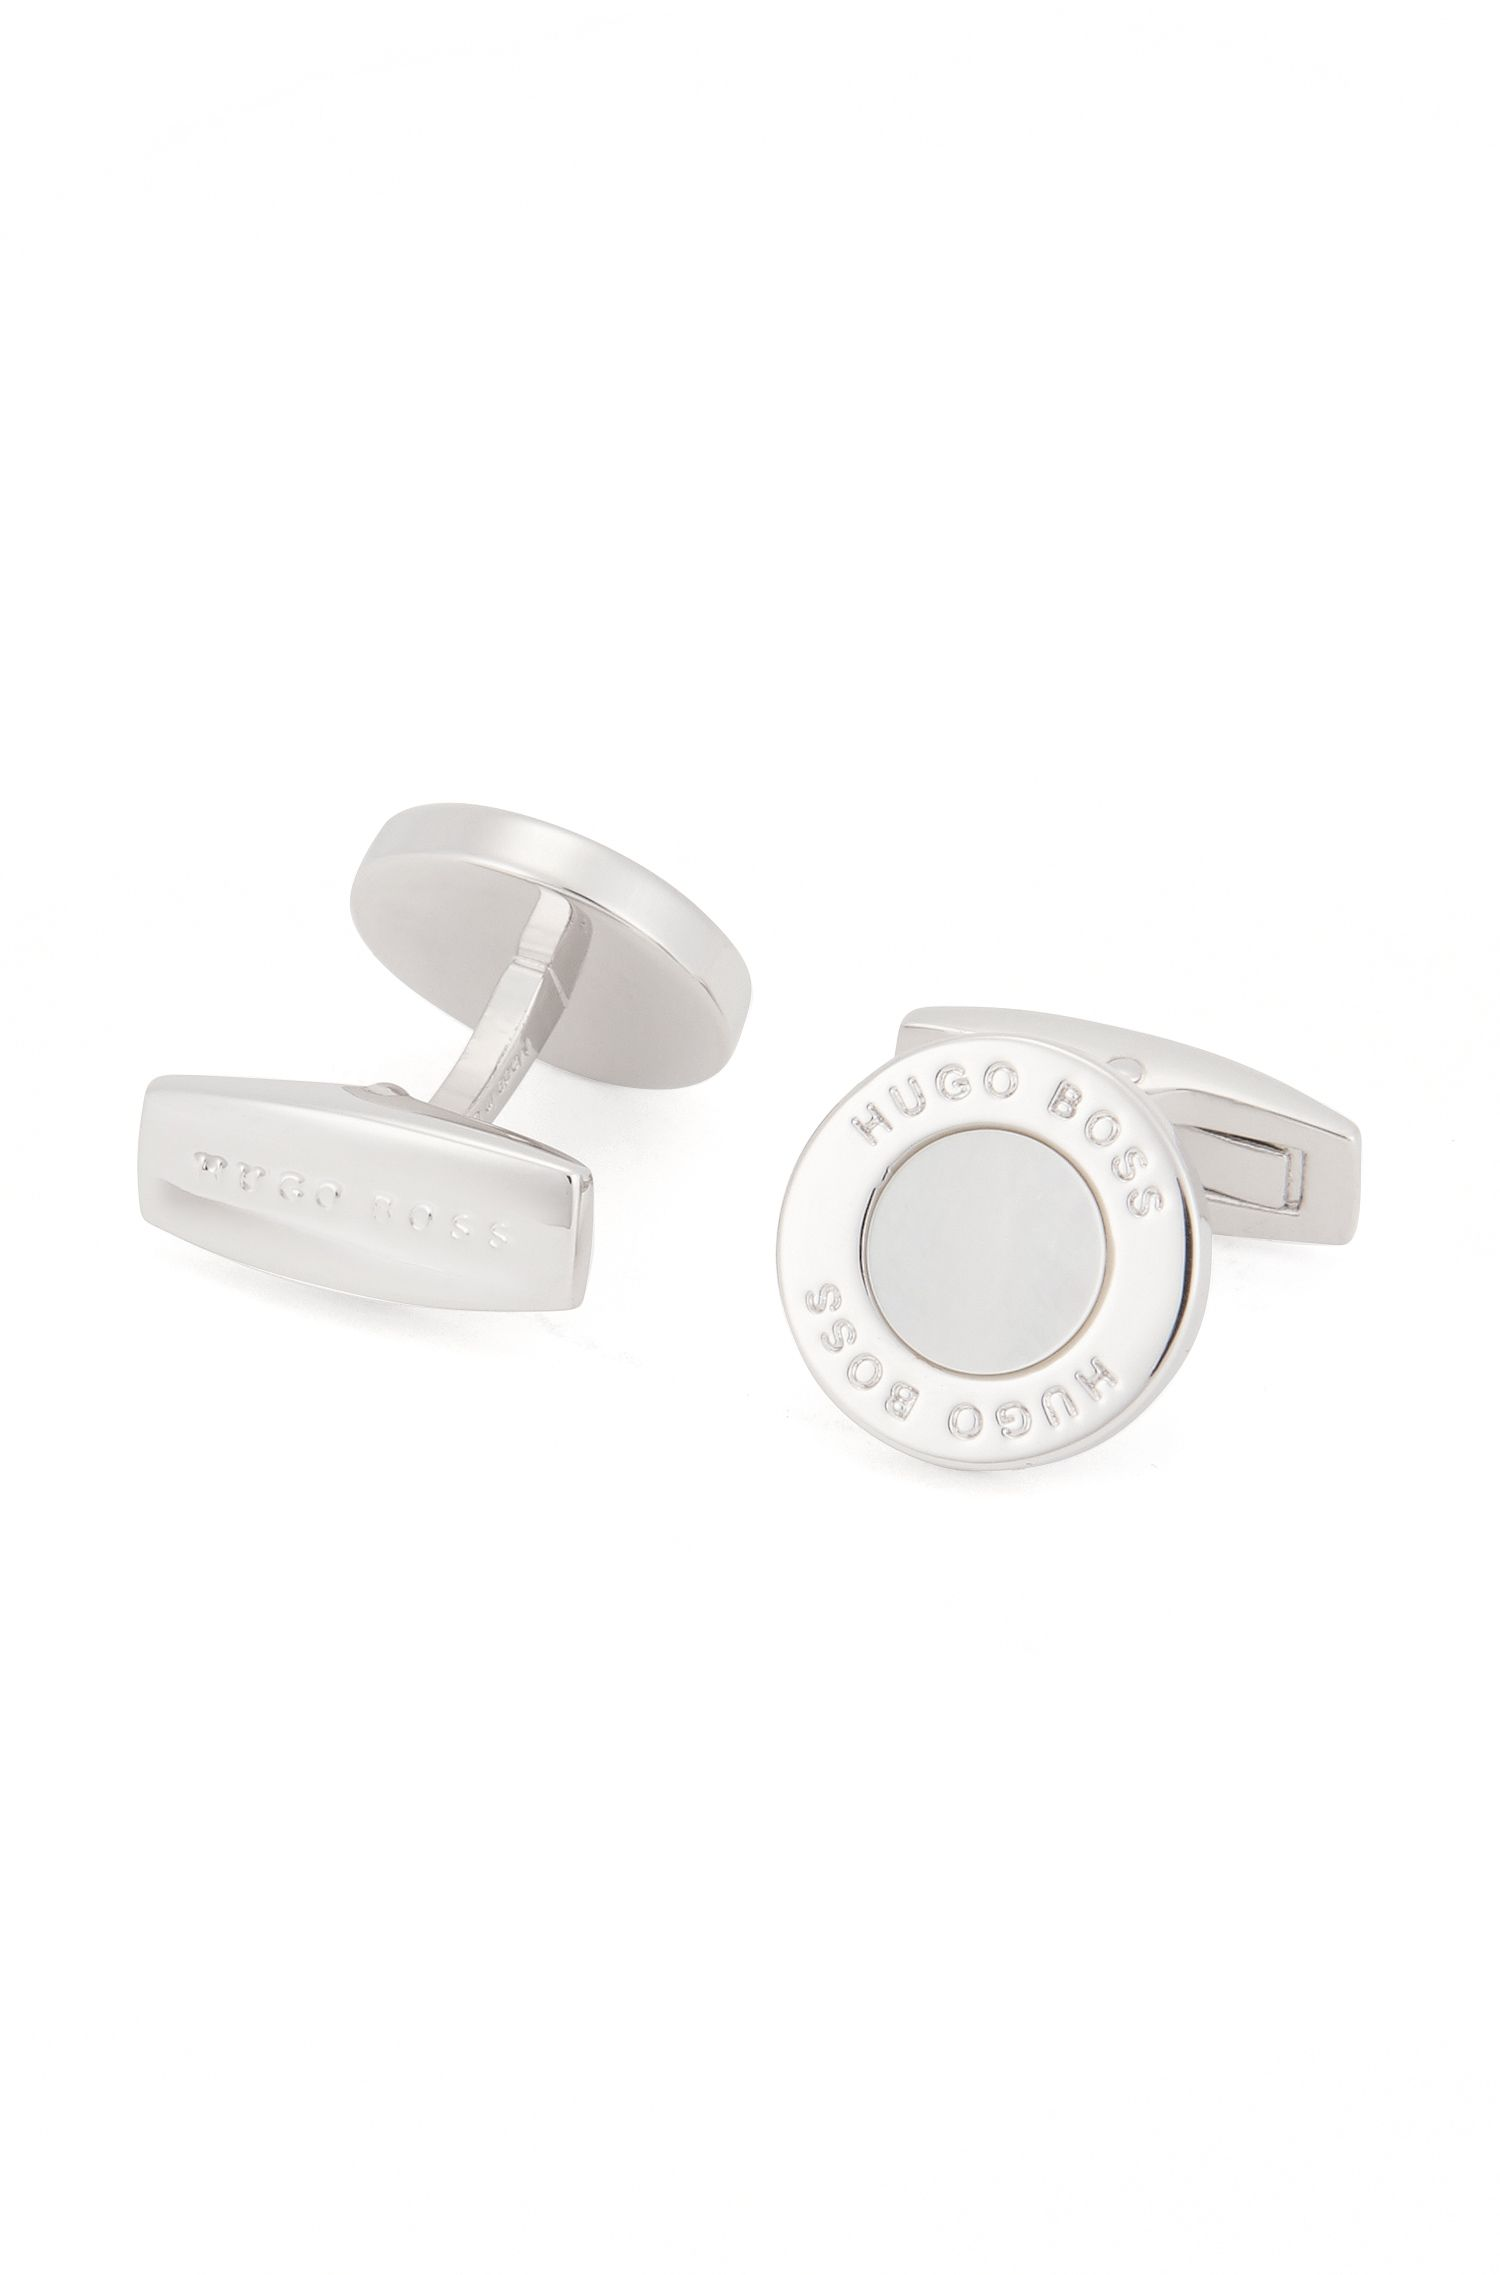 BOSS Hugo Boss Mother-Of-Pearl & Brass Cuffllinks T-Round One Size White